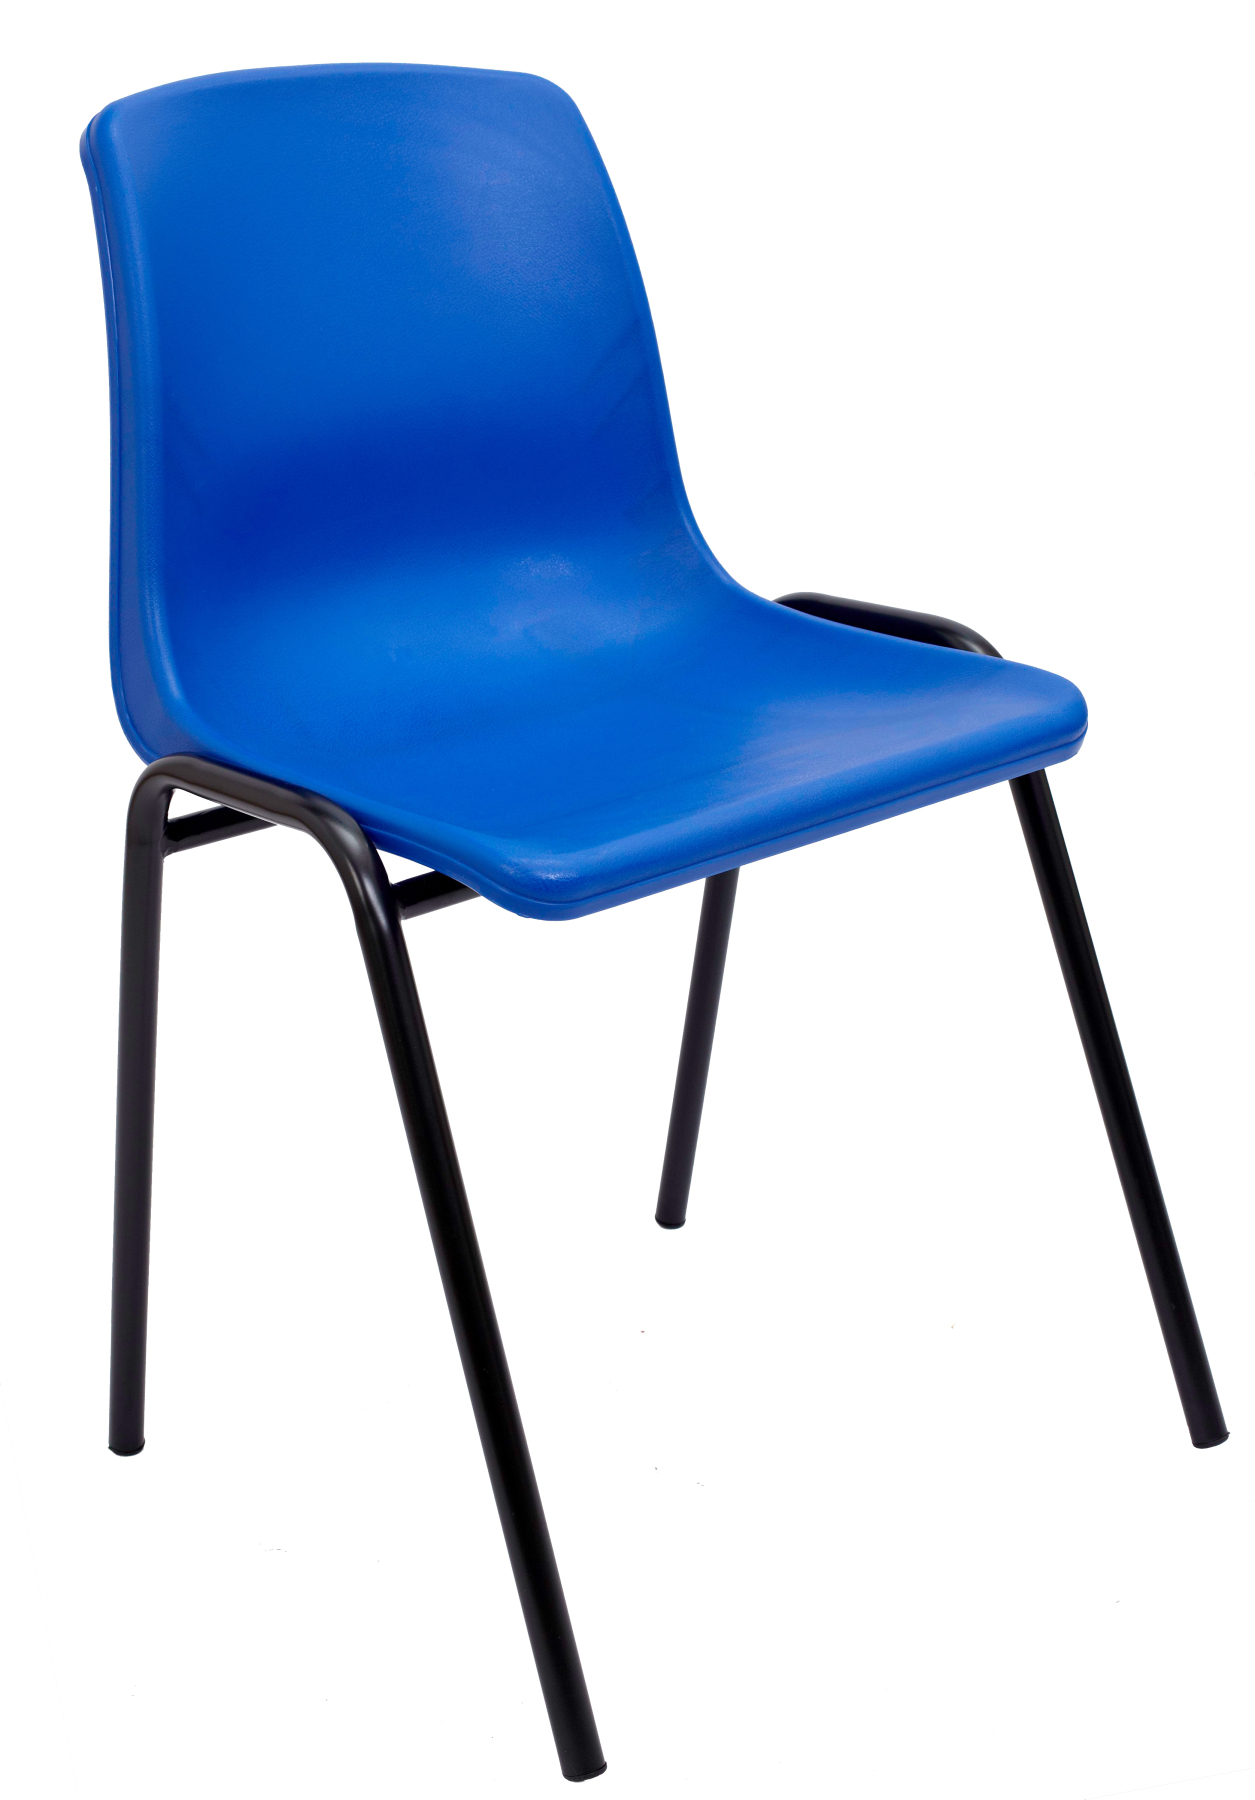 Visitor Chair Desk Ergonomic, Stackable And With Negro Up Seat And Backstop Structure PVC The Color Blue TAPHOLE AND CURLED